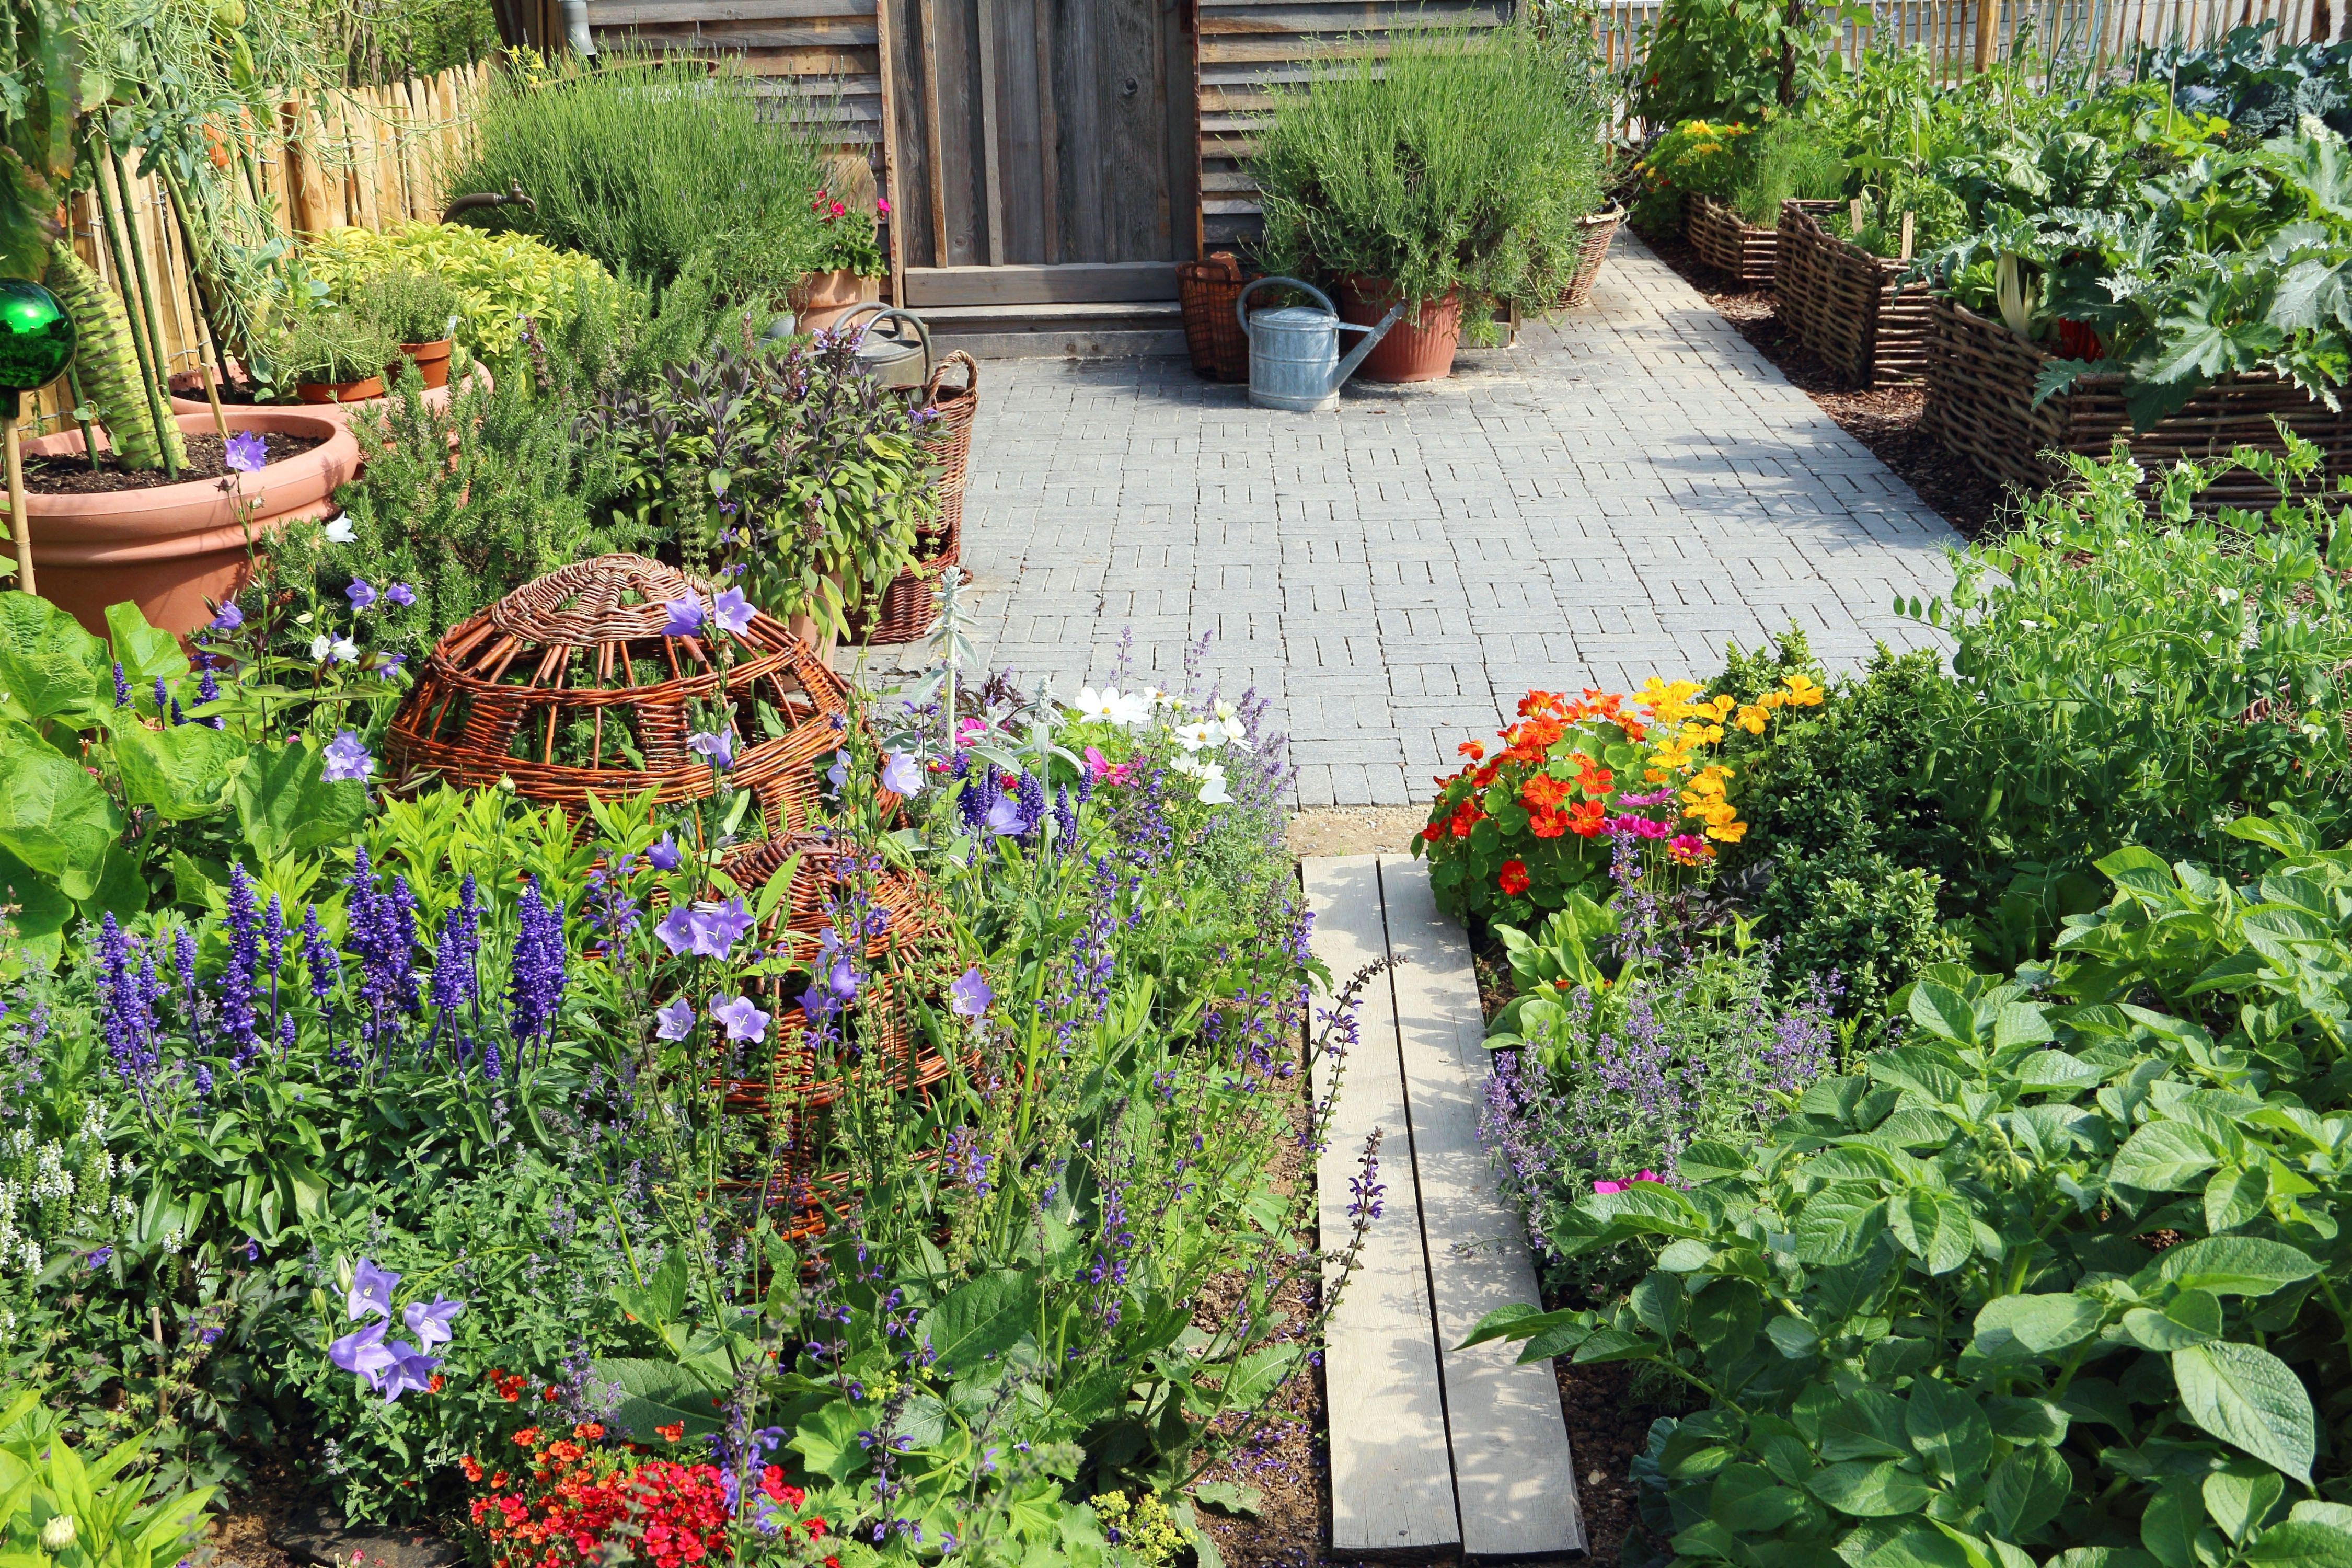 Planting Calendar When To Plant Vegetables Edible Landscaping